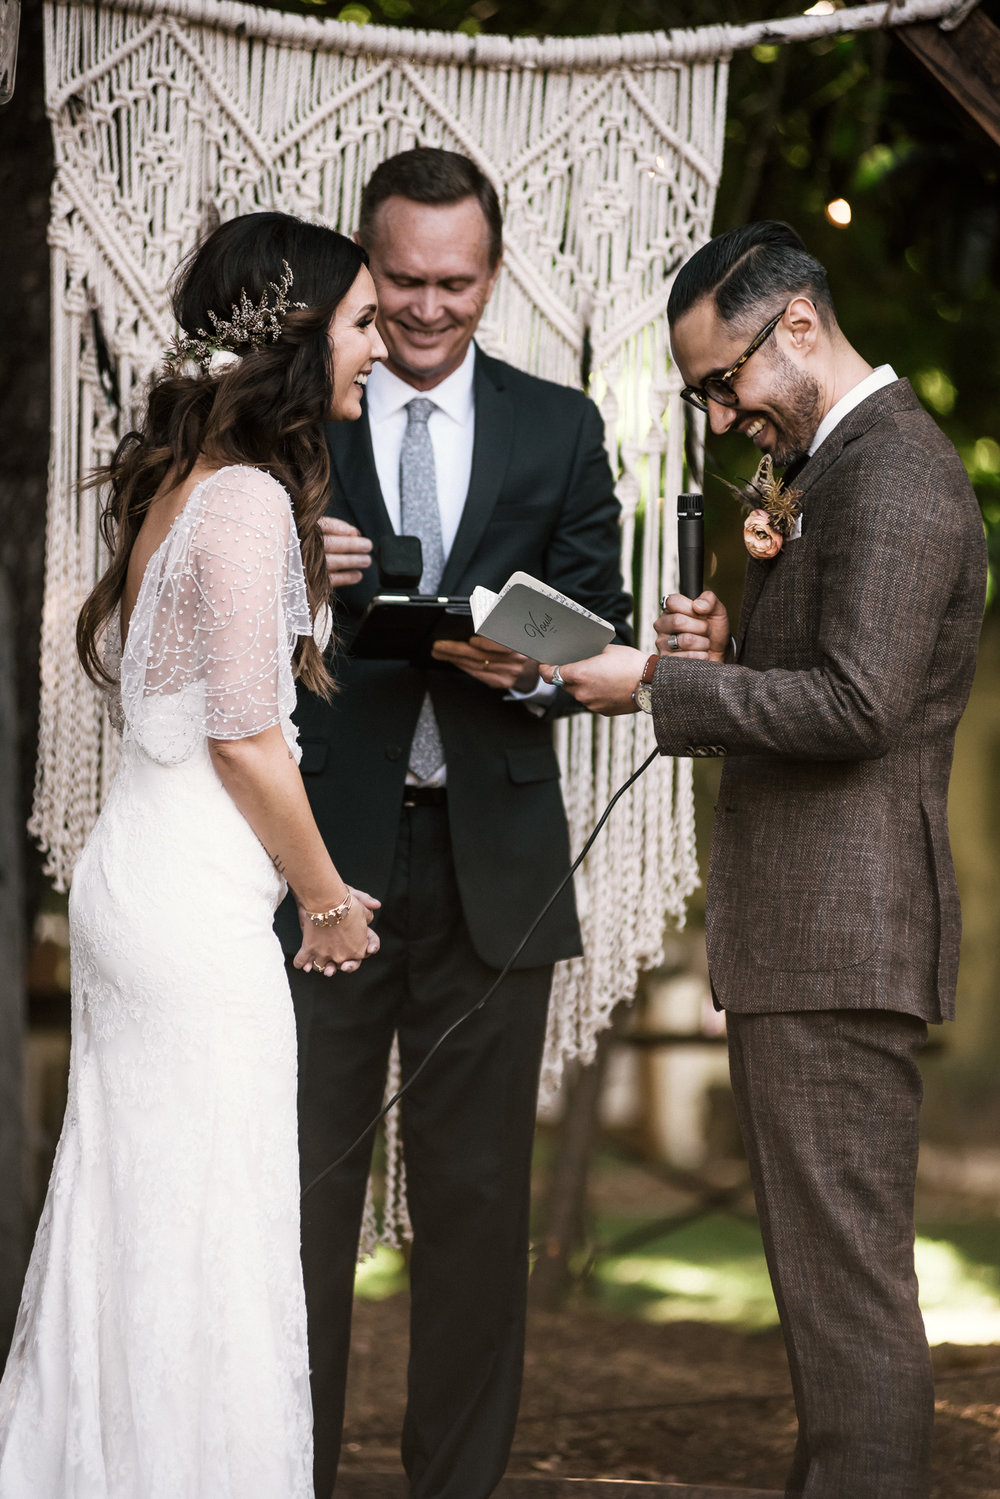 groom reads his wedding vows shot by wedding photographer at the charming St. George Hotel in Volcano California